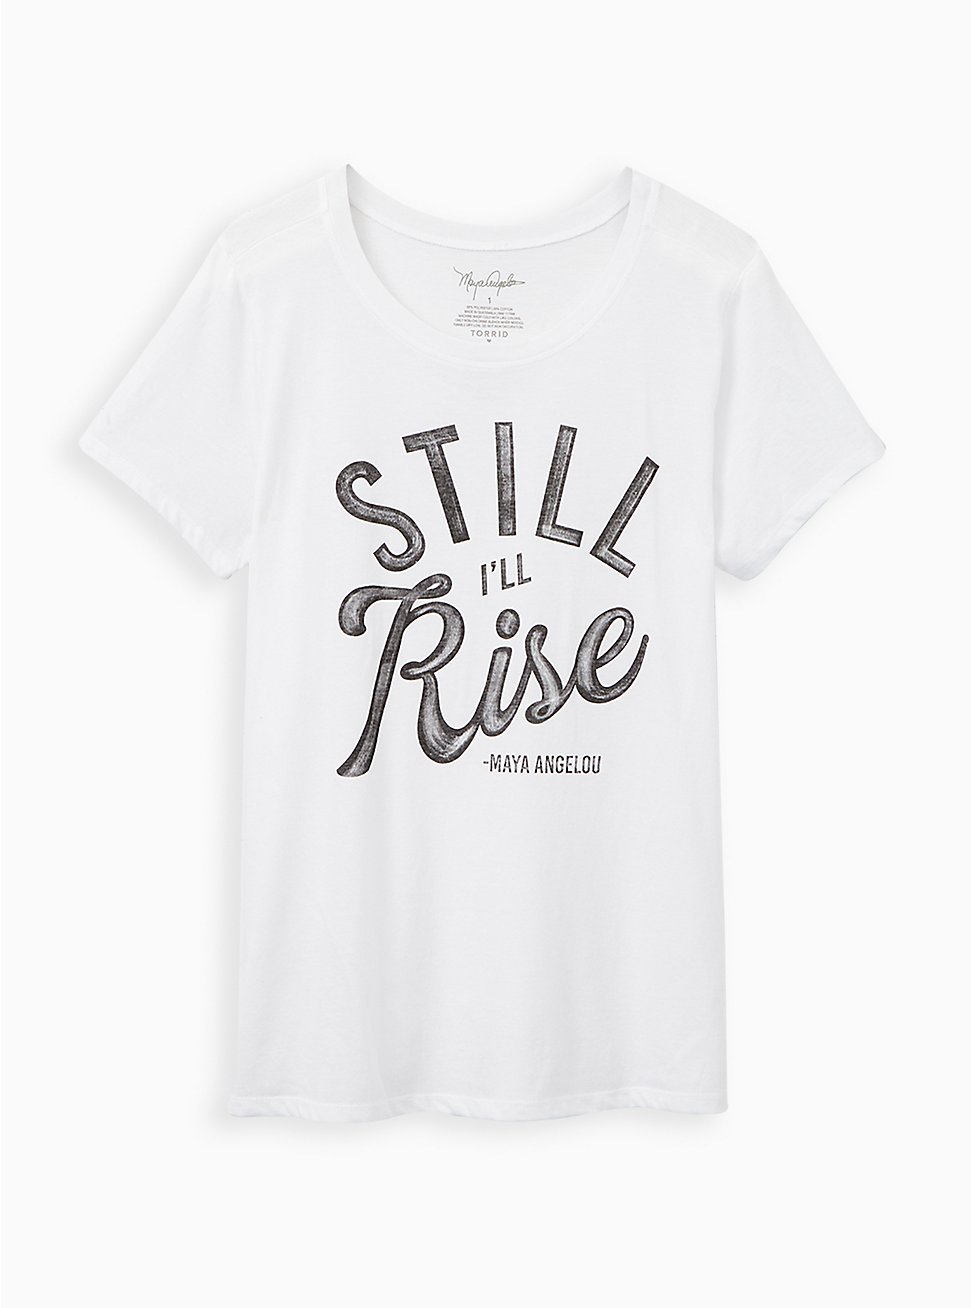 #TorridStrong Slim Fit Tee - Maya Angelou White, BRIGHT WHITE, hi-res